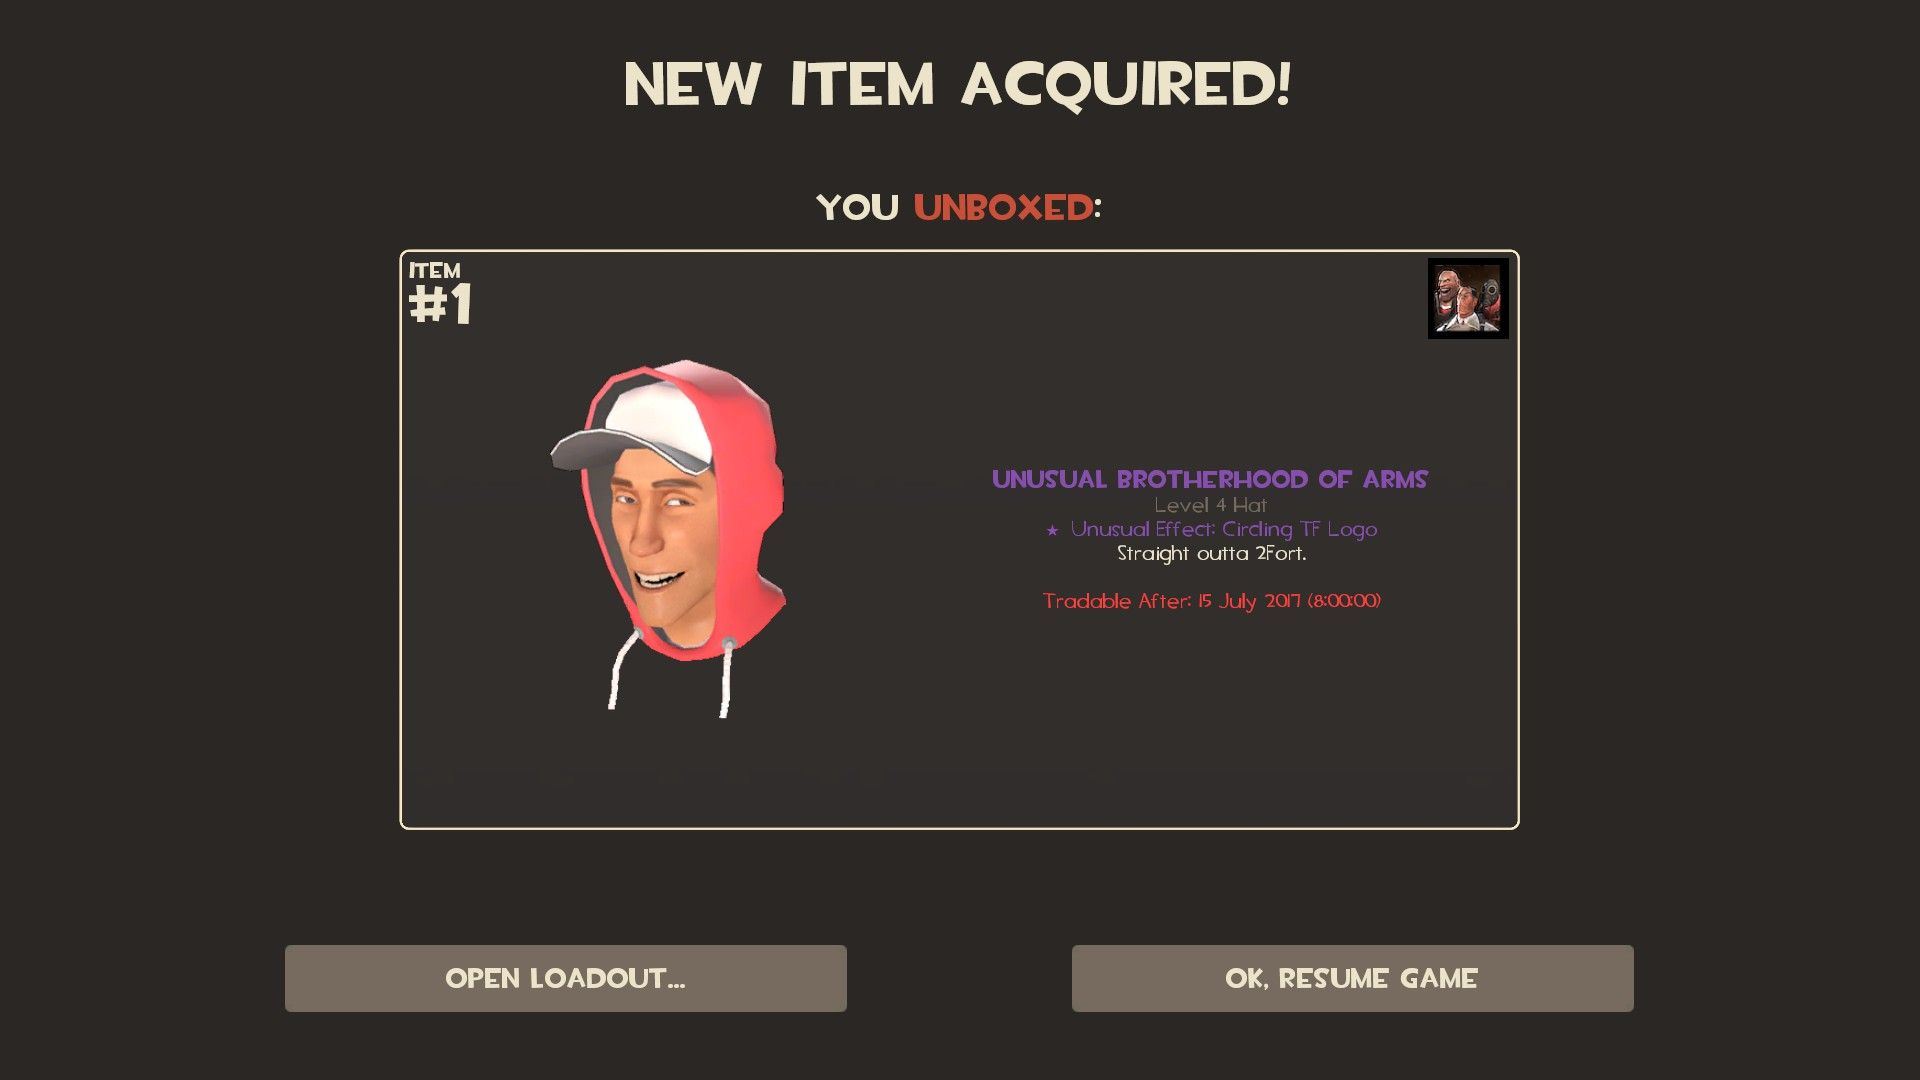 After 550 hours of gameplay my first unusual games